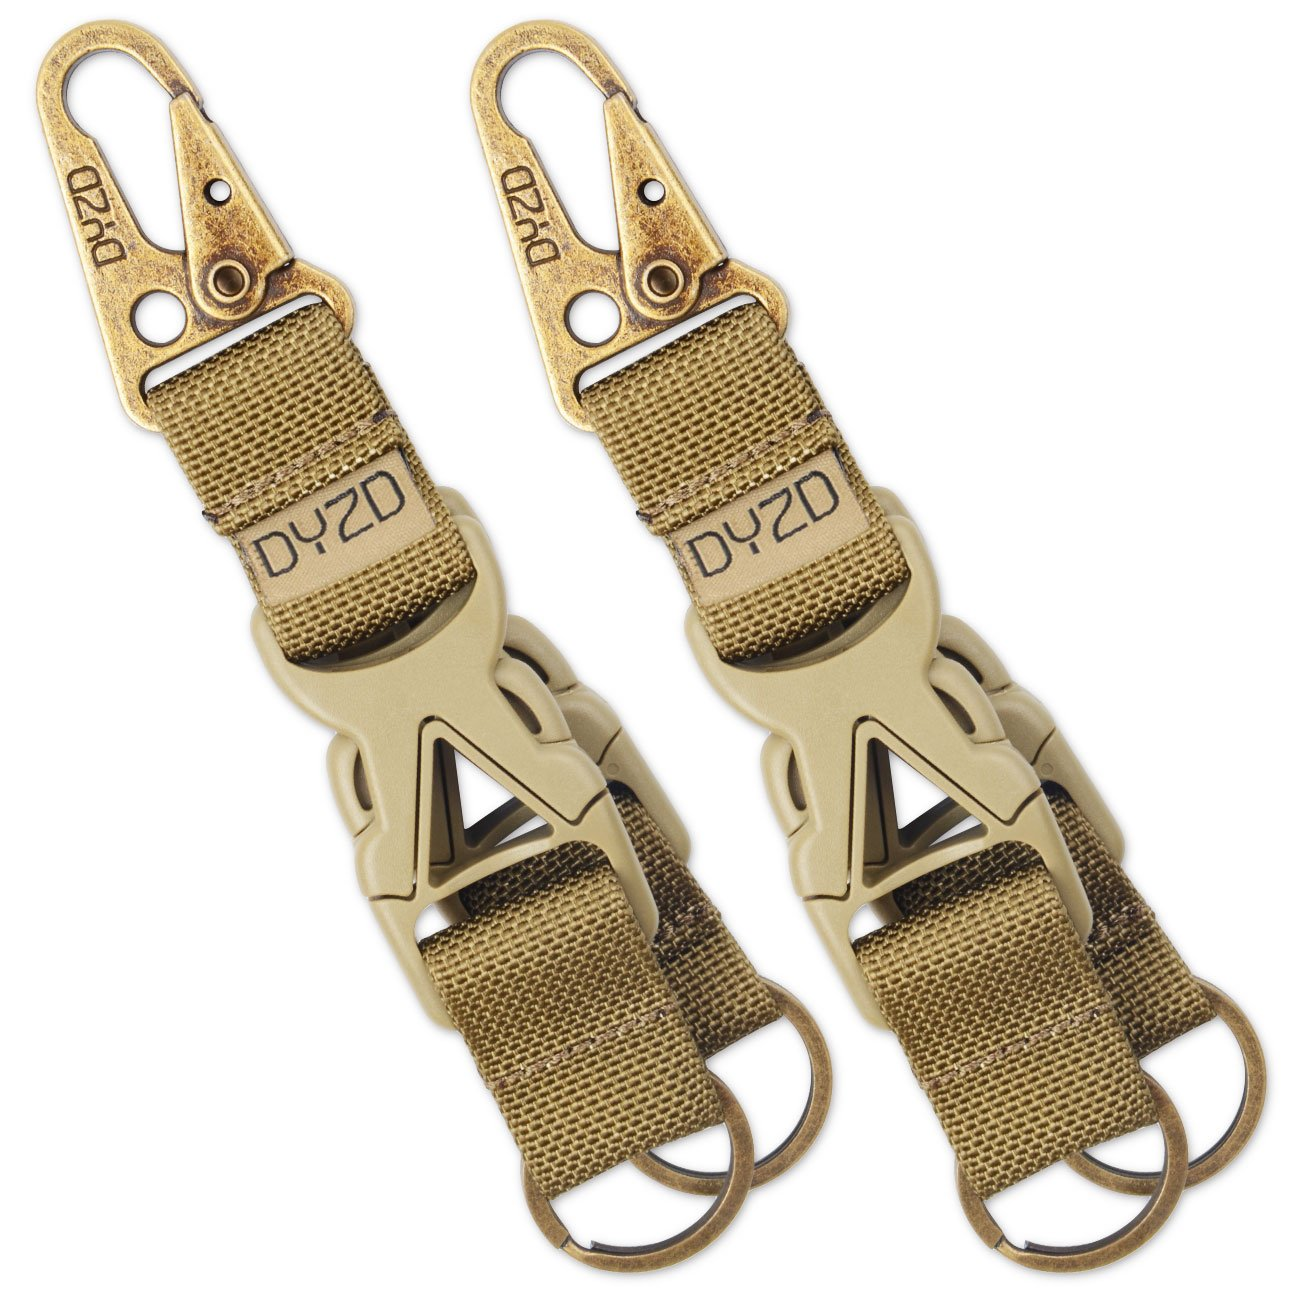 DYZD Tactical Gear Keychain Carabiner Survival 100% Nylon Webbing Key Chain Tactical Key Holder Quick Release Buckle with Key Ring